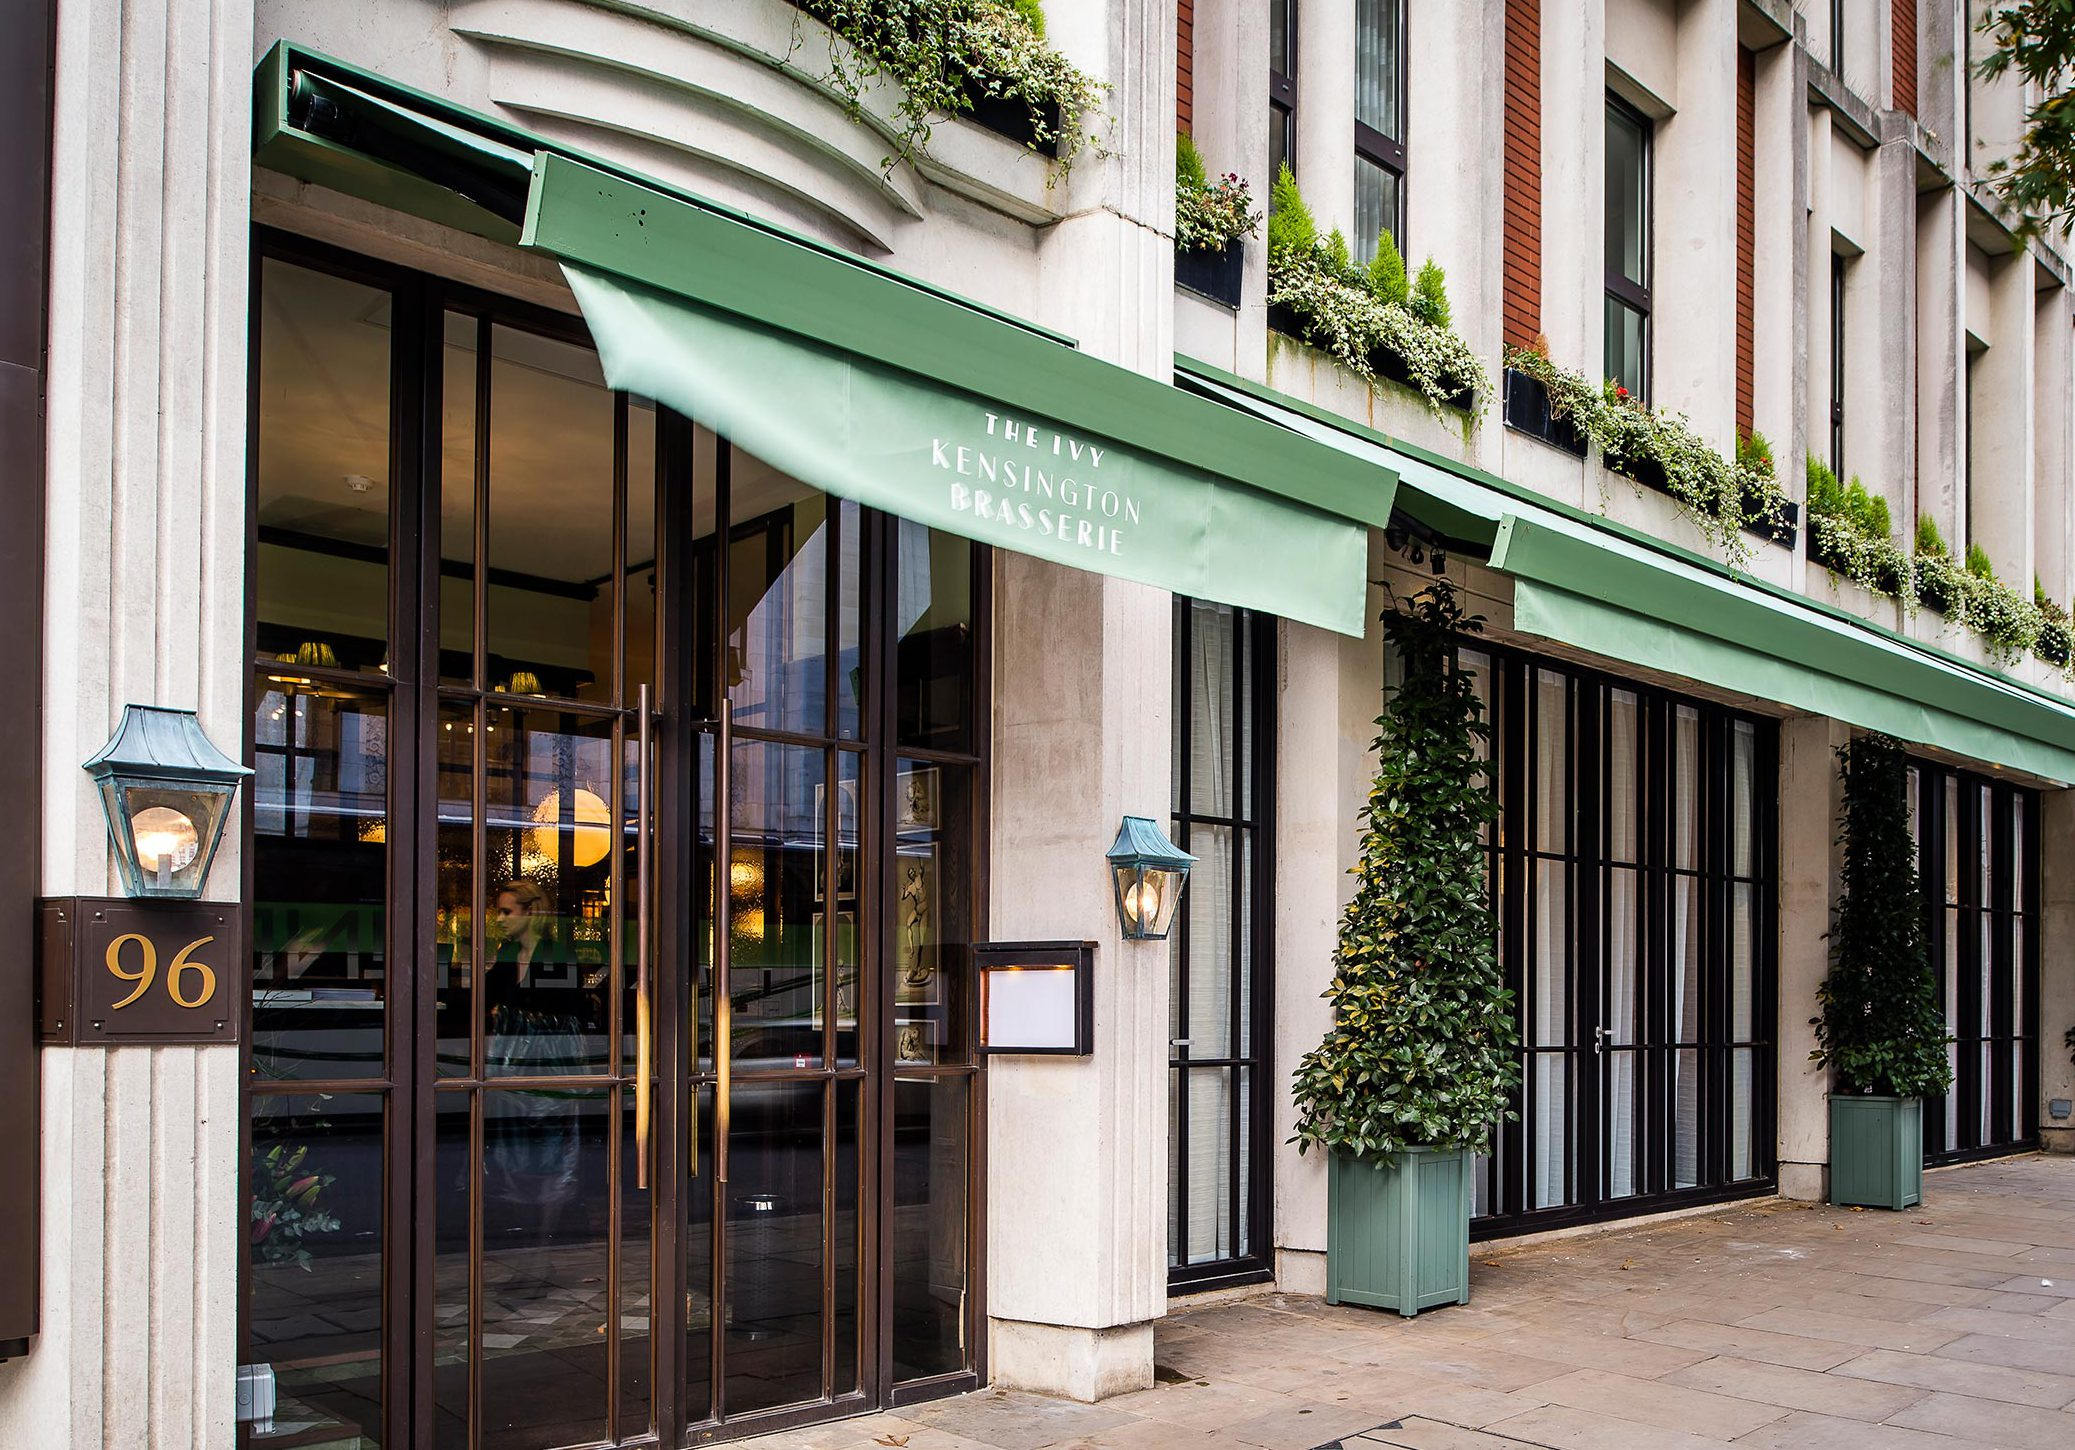 all day casual dining the ivy kensington brasserie london